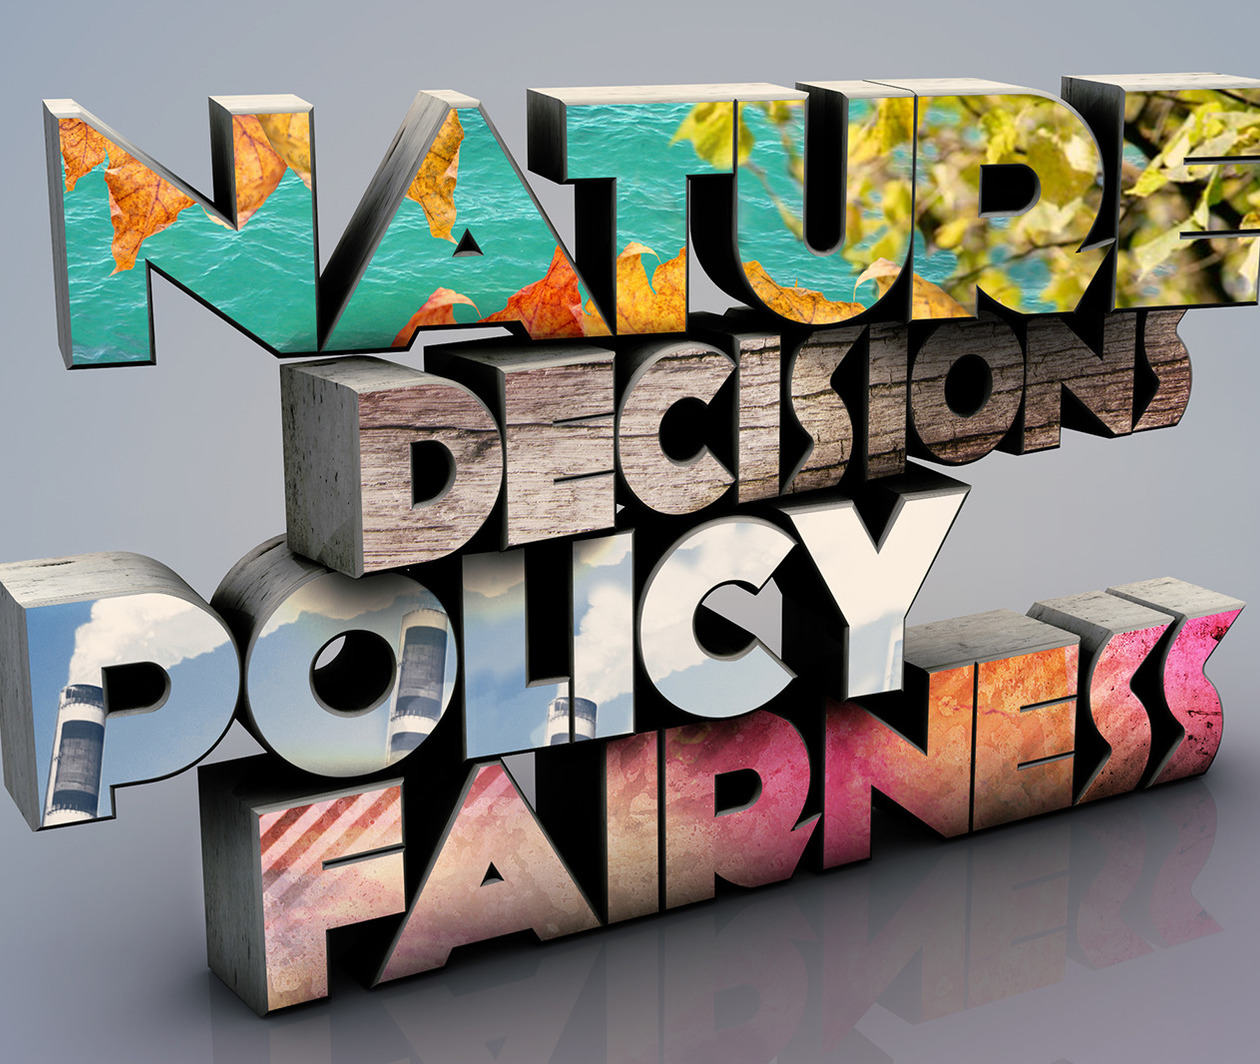 Fairness and Nature: When Worlds Collide